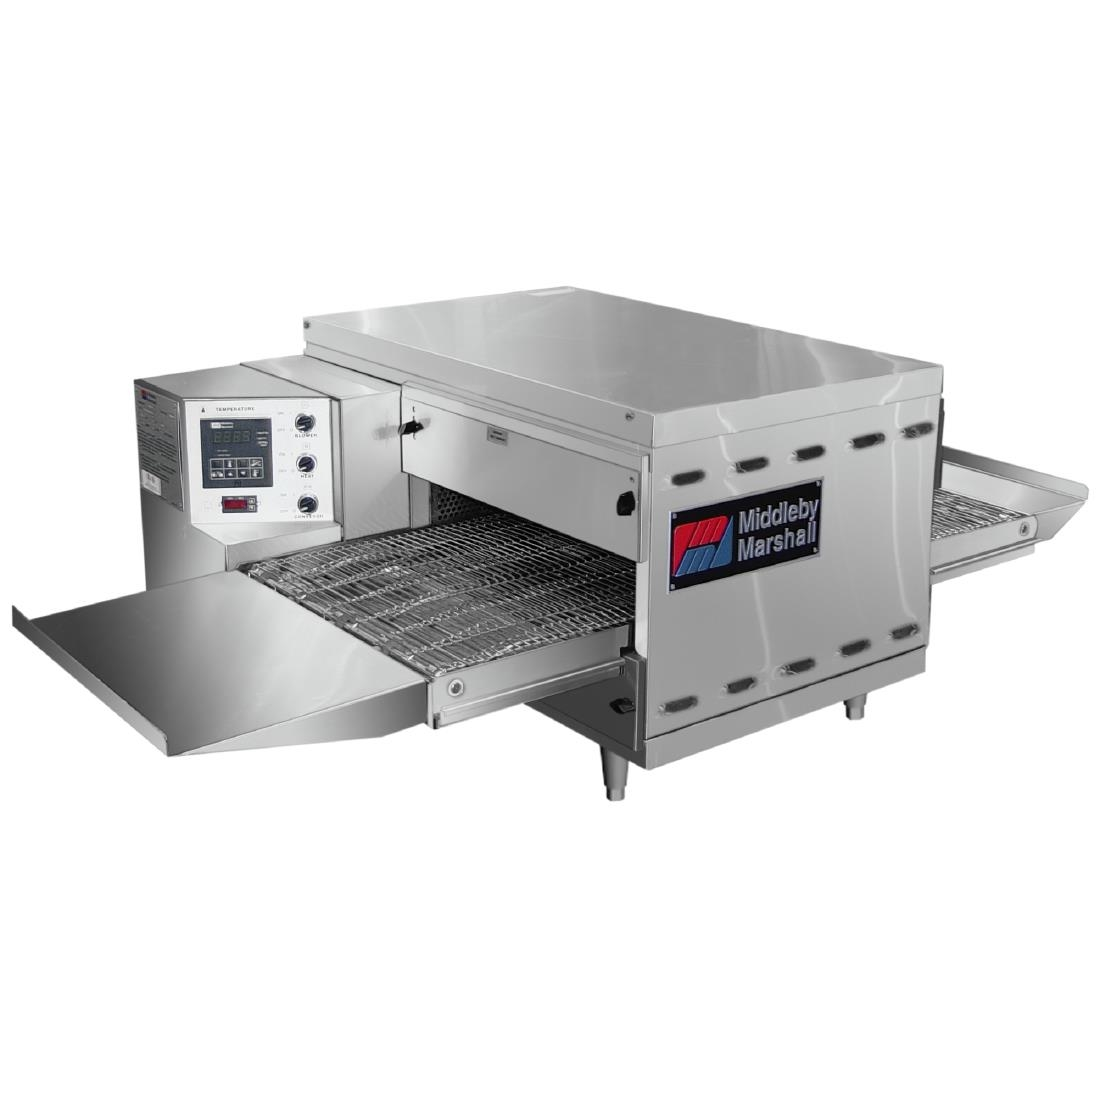 Image of Middleby Marshall Electric Conveyor Oven S1820E